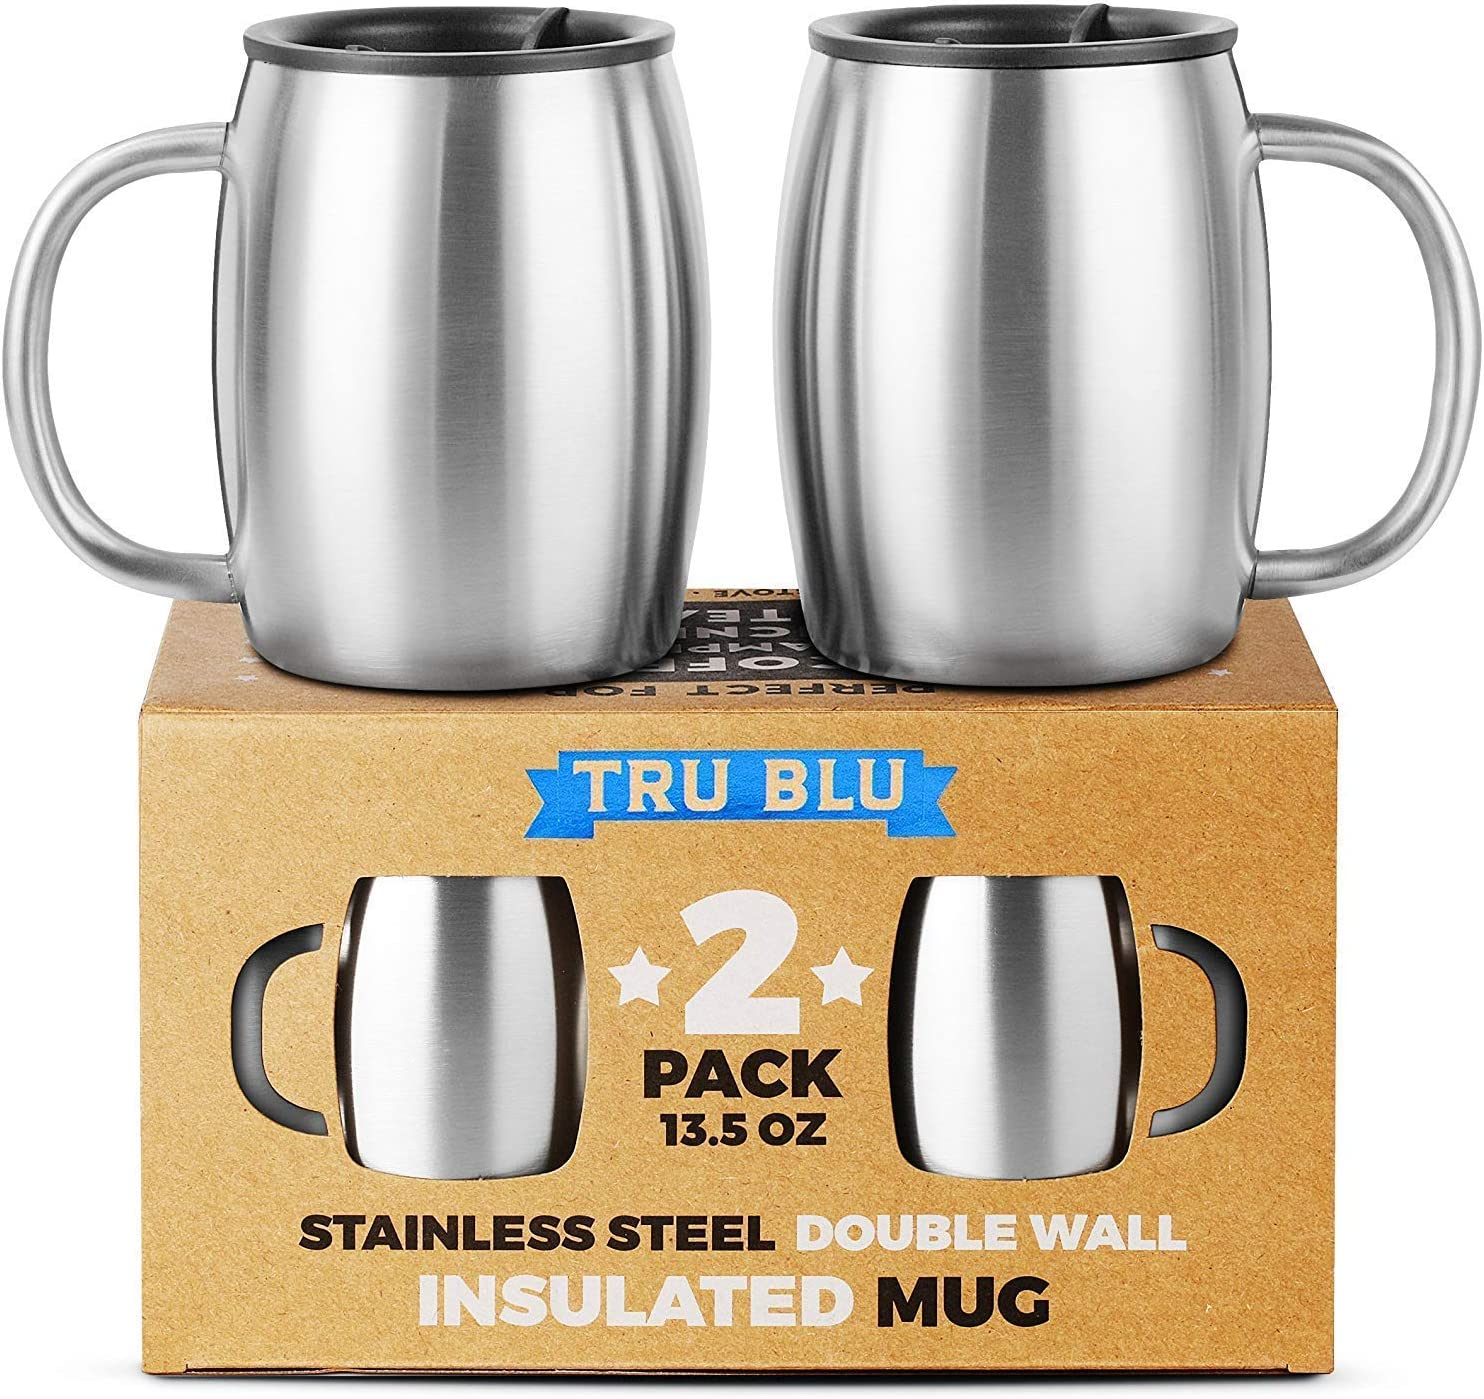 Stainless Steel Double Wall Insulated Thermal Coffee Tea Mug Cup With Lid